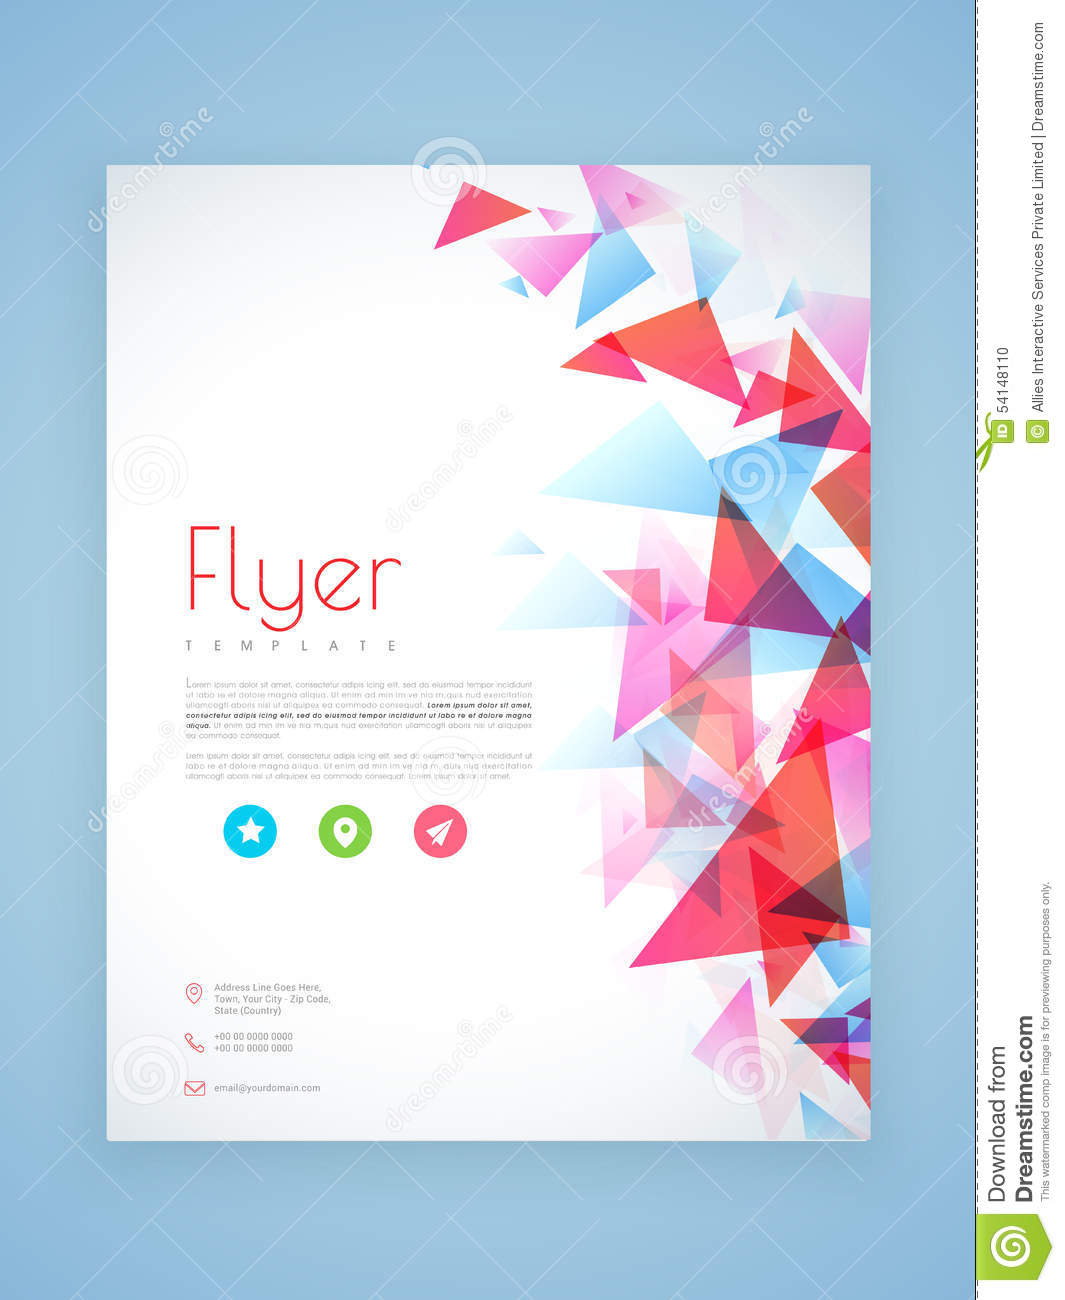 Professional flyer template or brochure design stock for Professional brochure design templates